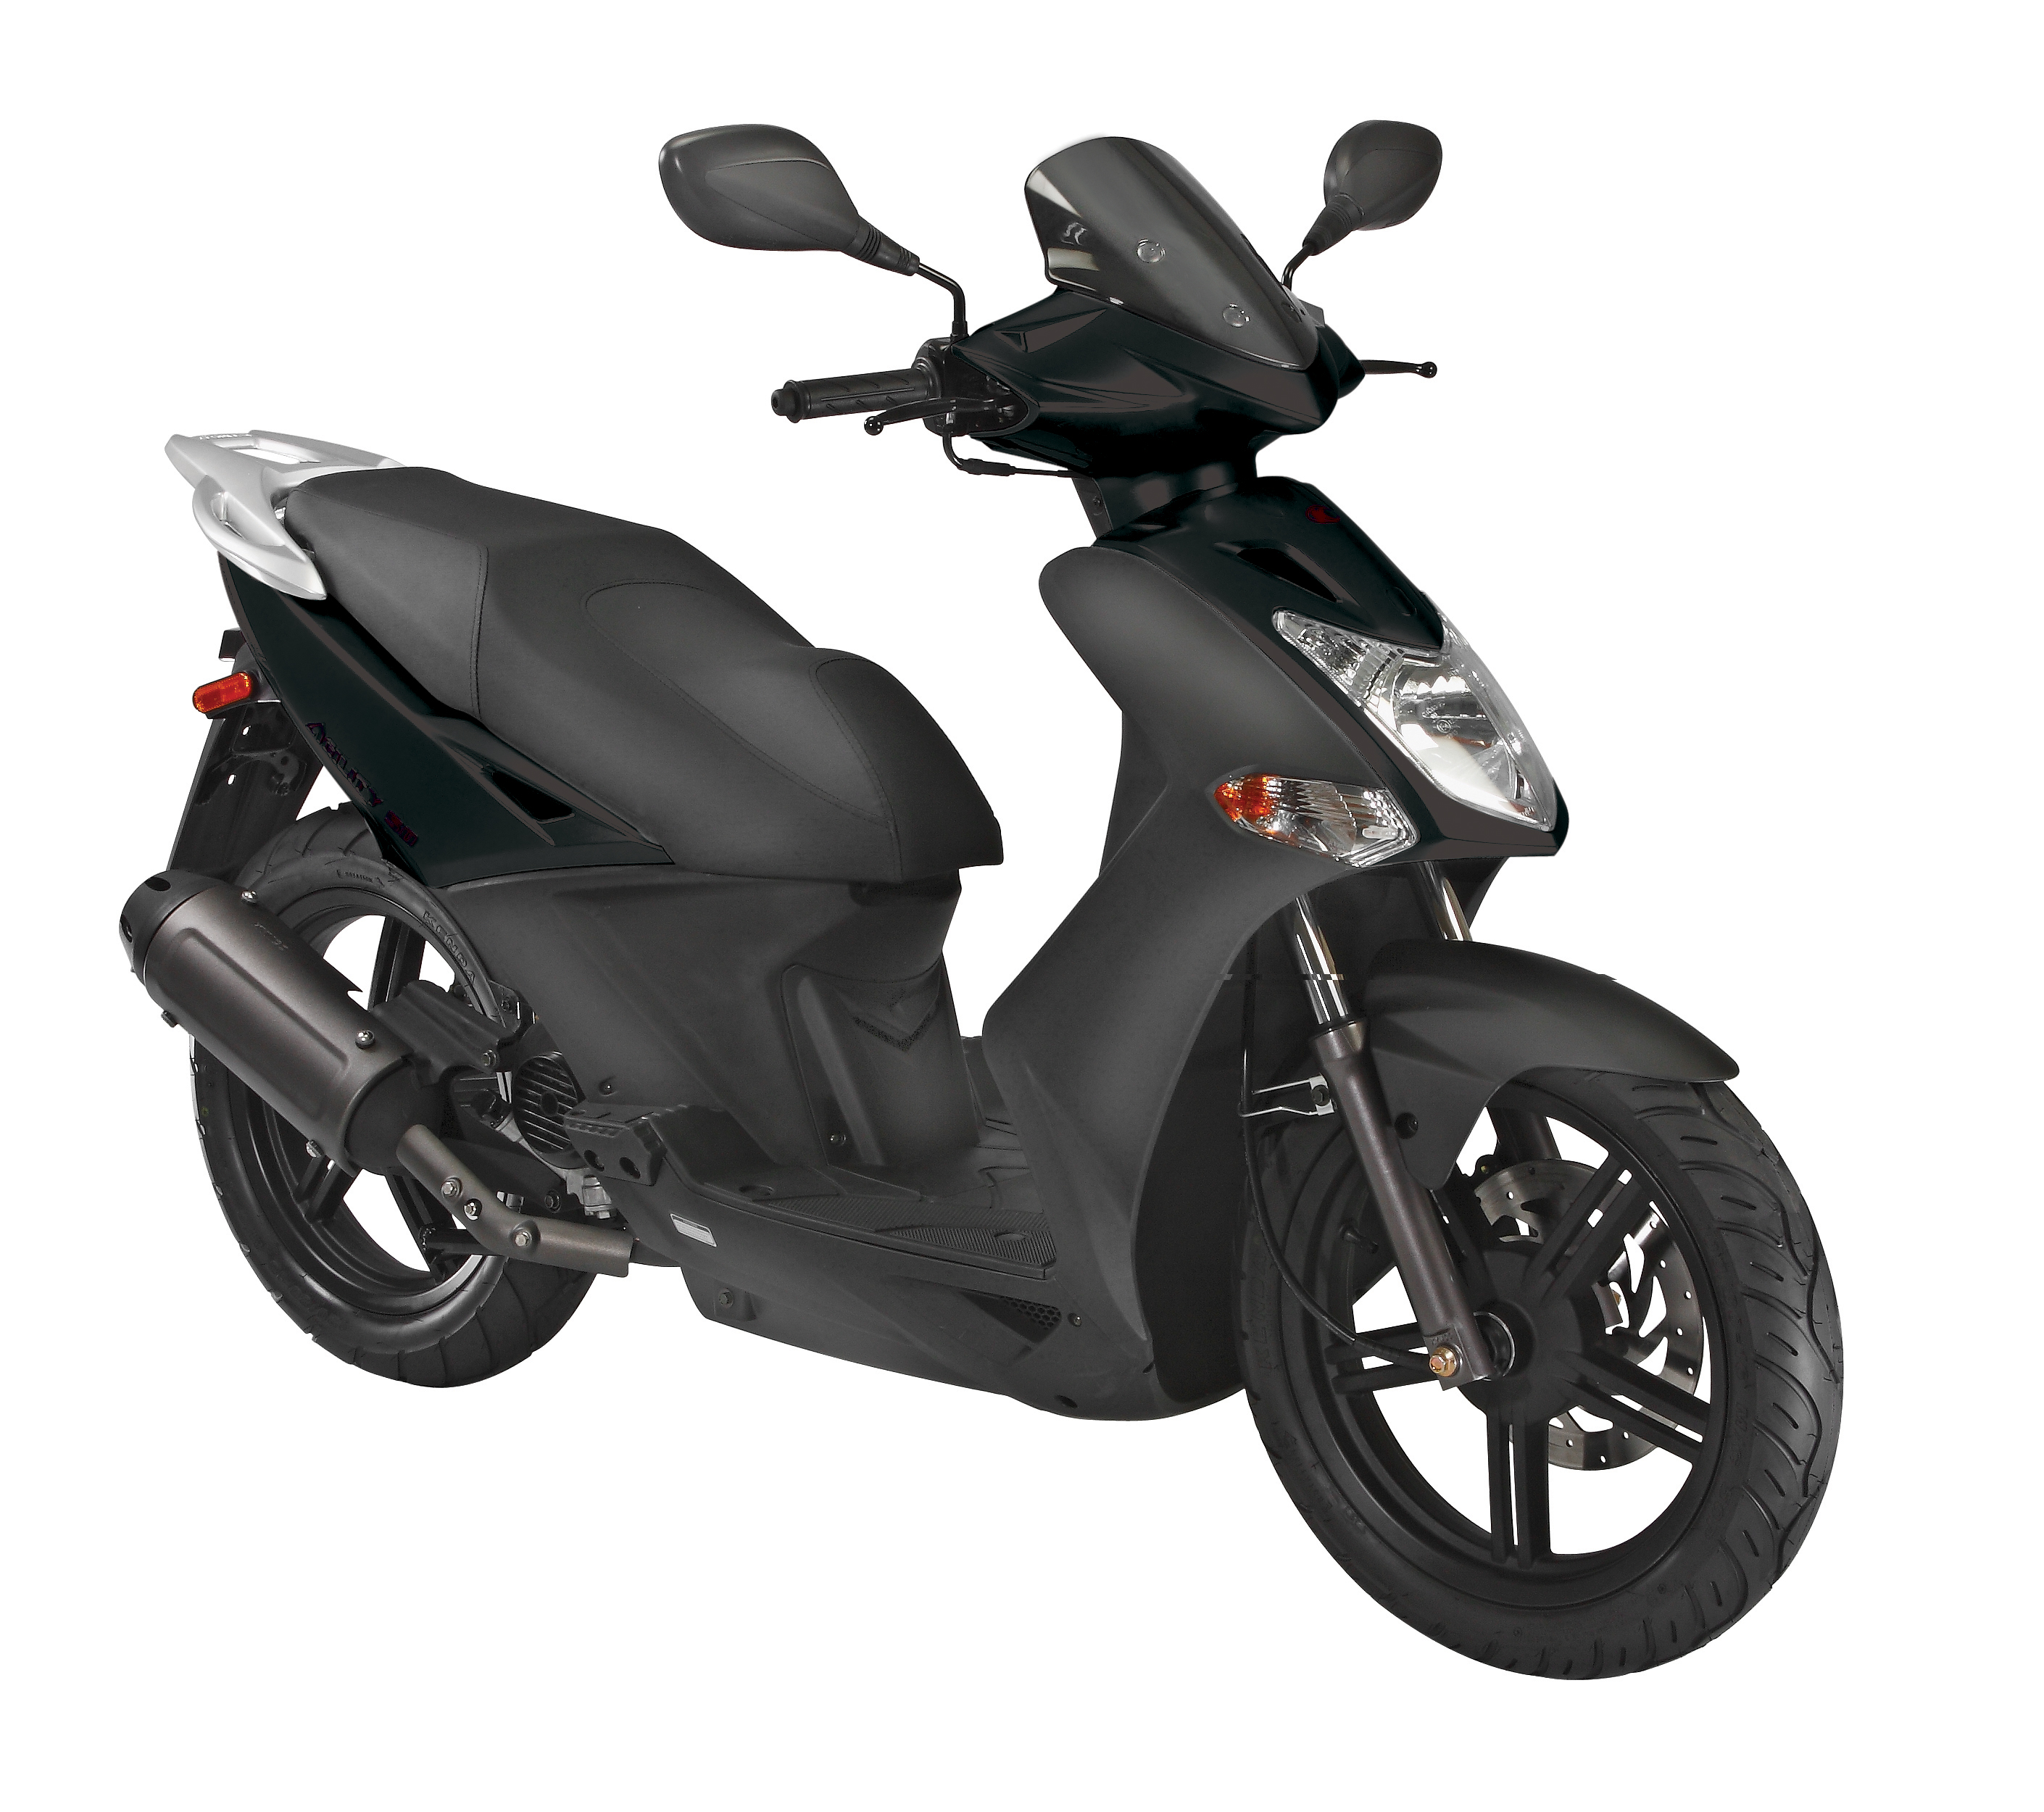 Kymco Agility City 125 images #101816